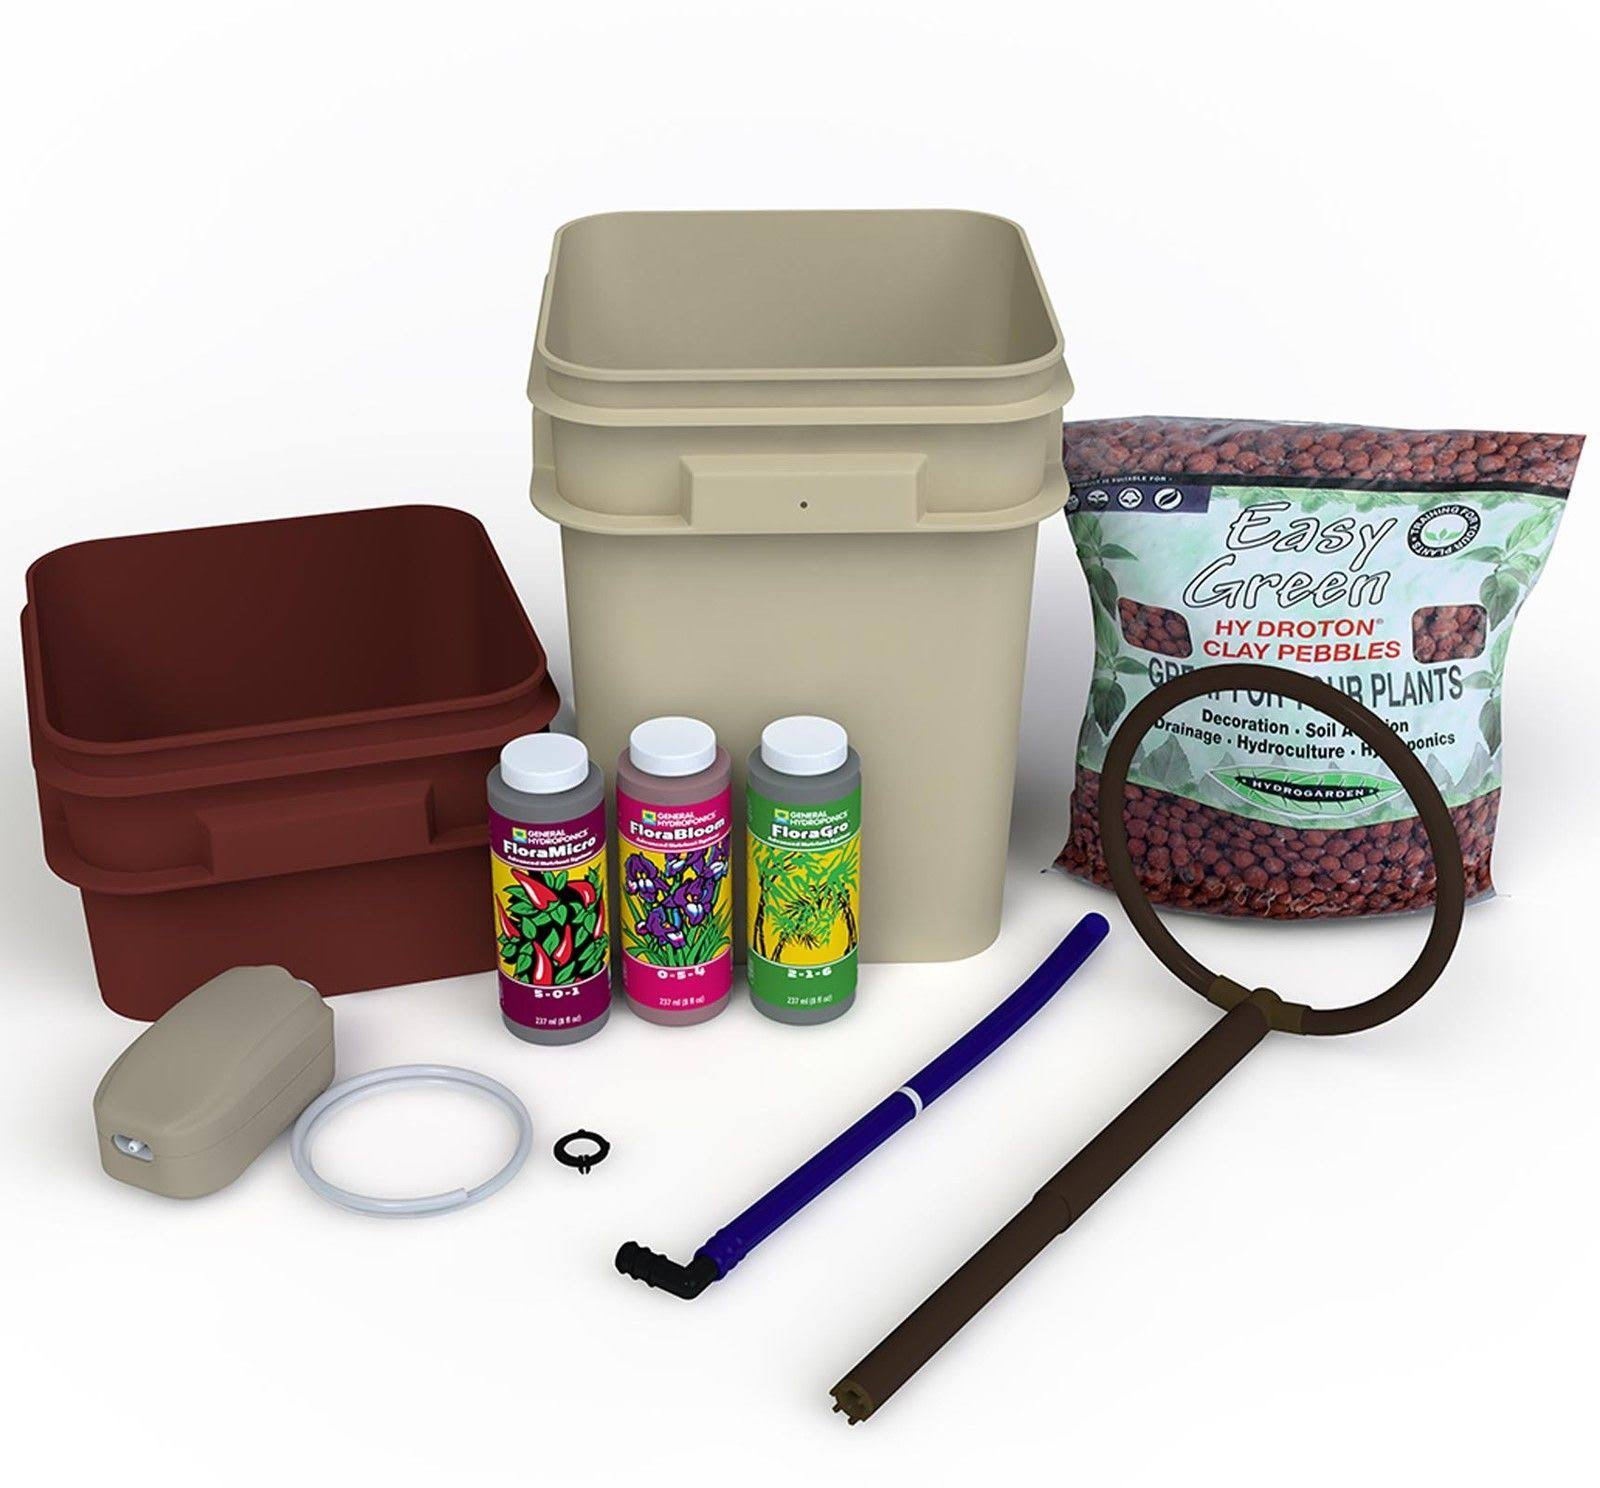 Complete WaterFarm Hydroponic Kit